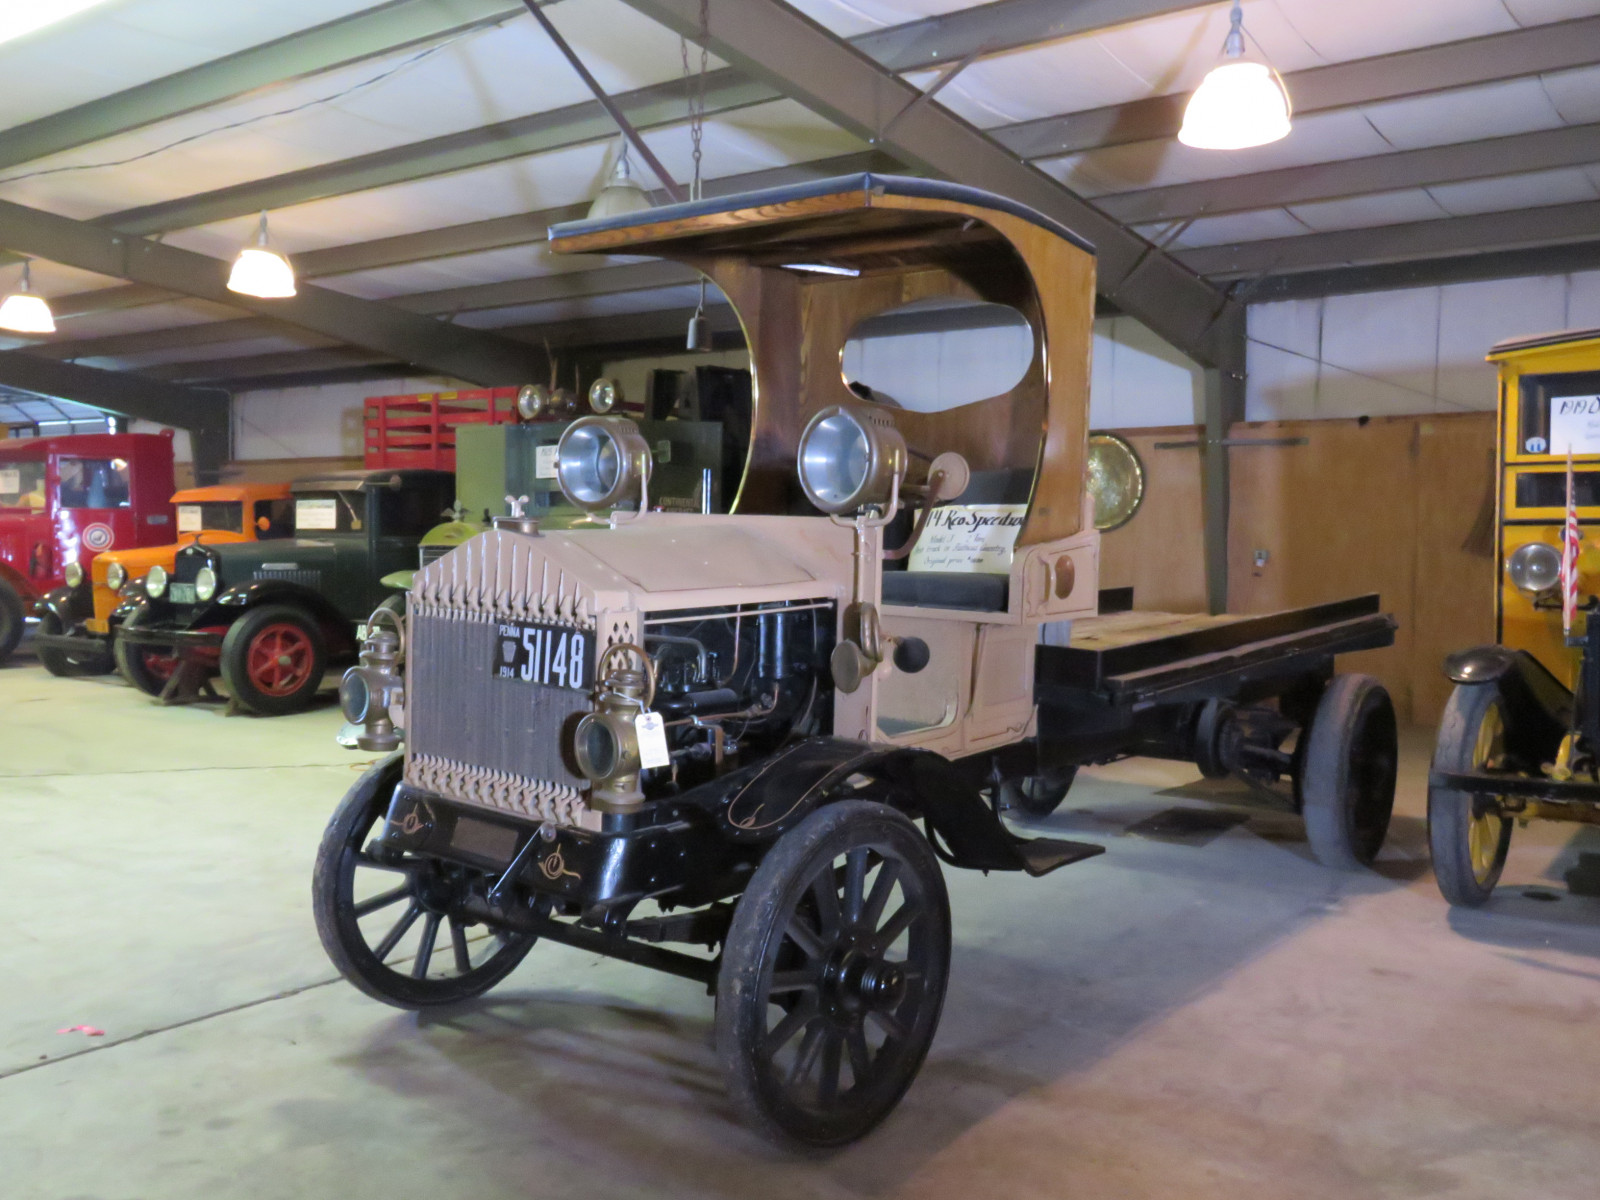 1914 REO Speedwagon Model J 2 Ton Truck - Image 3